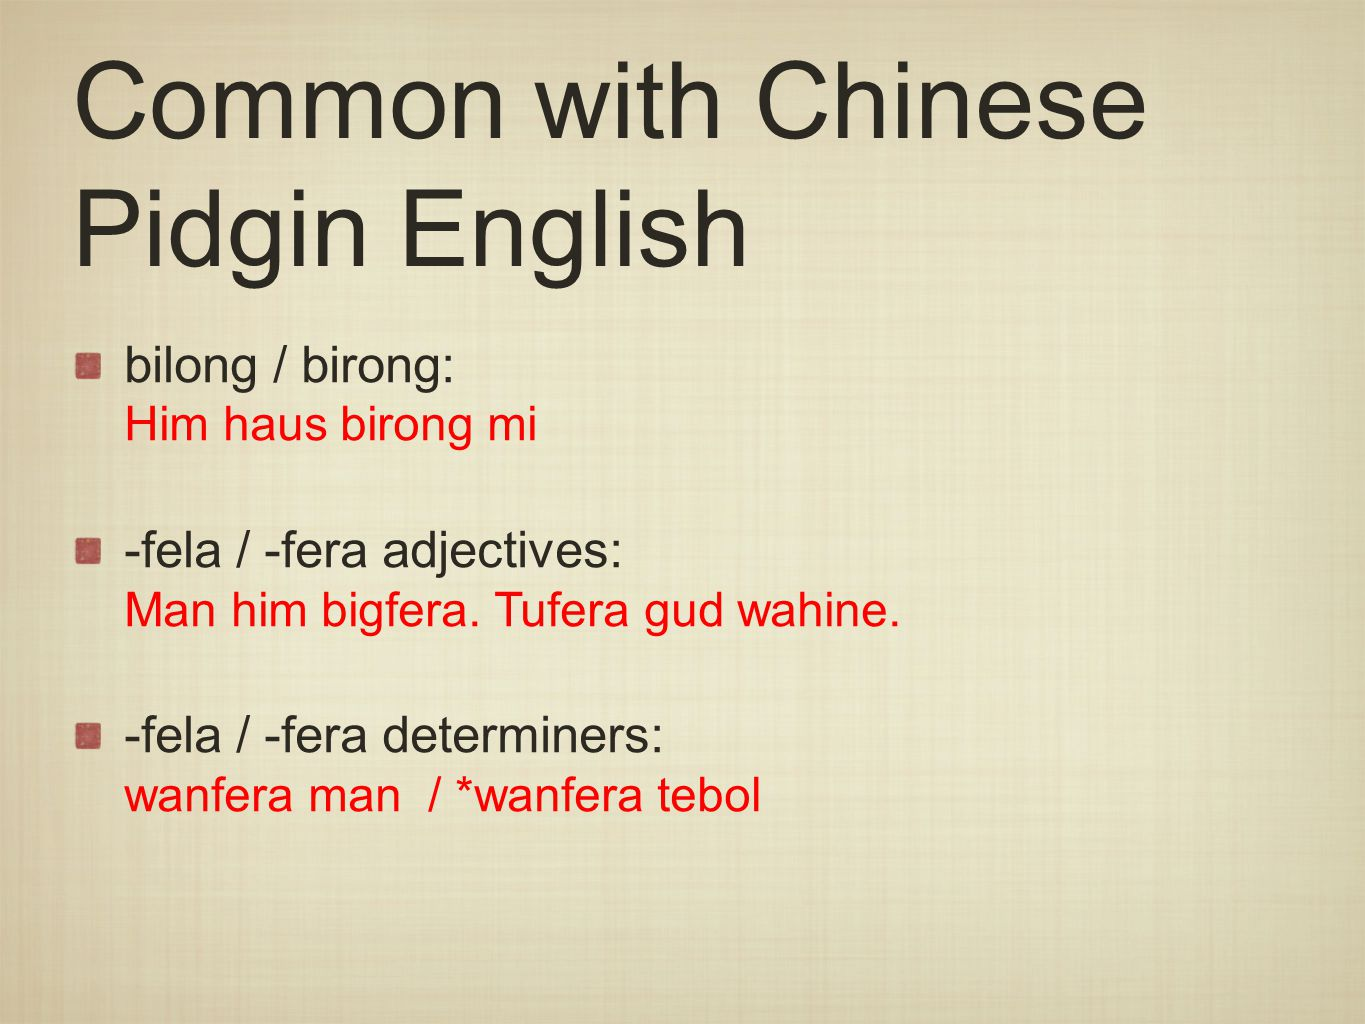 Common with Chinese Pidgin English